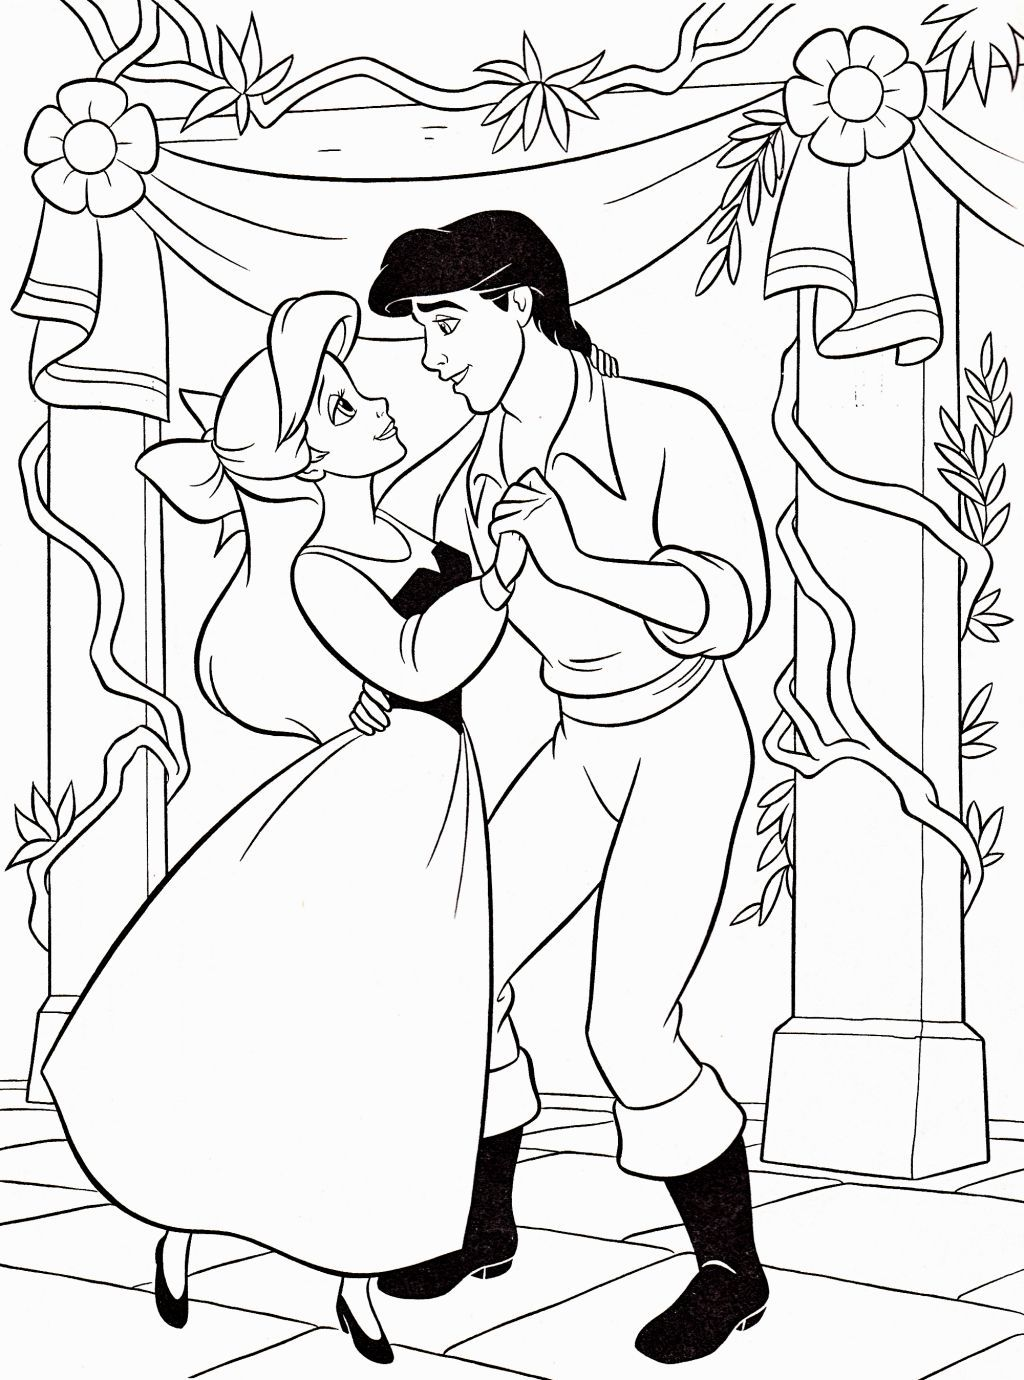 Ariel Disney Coloring Pages | Coloring Pages | Pinterest | Ariel ...